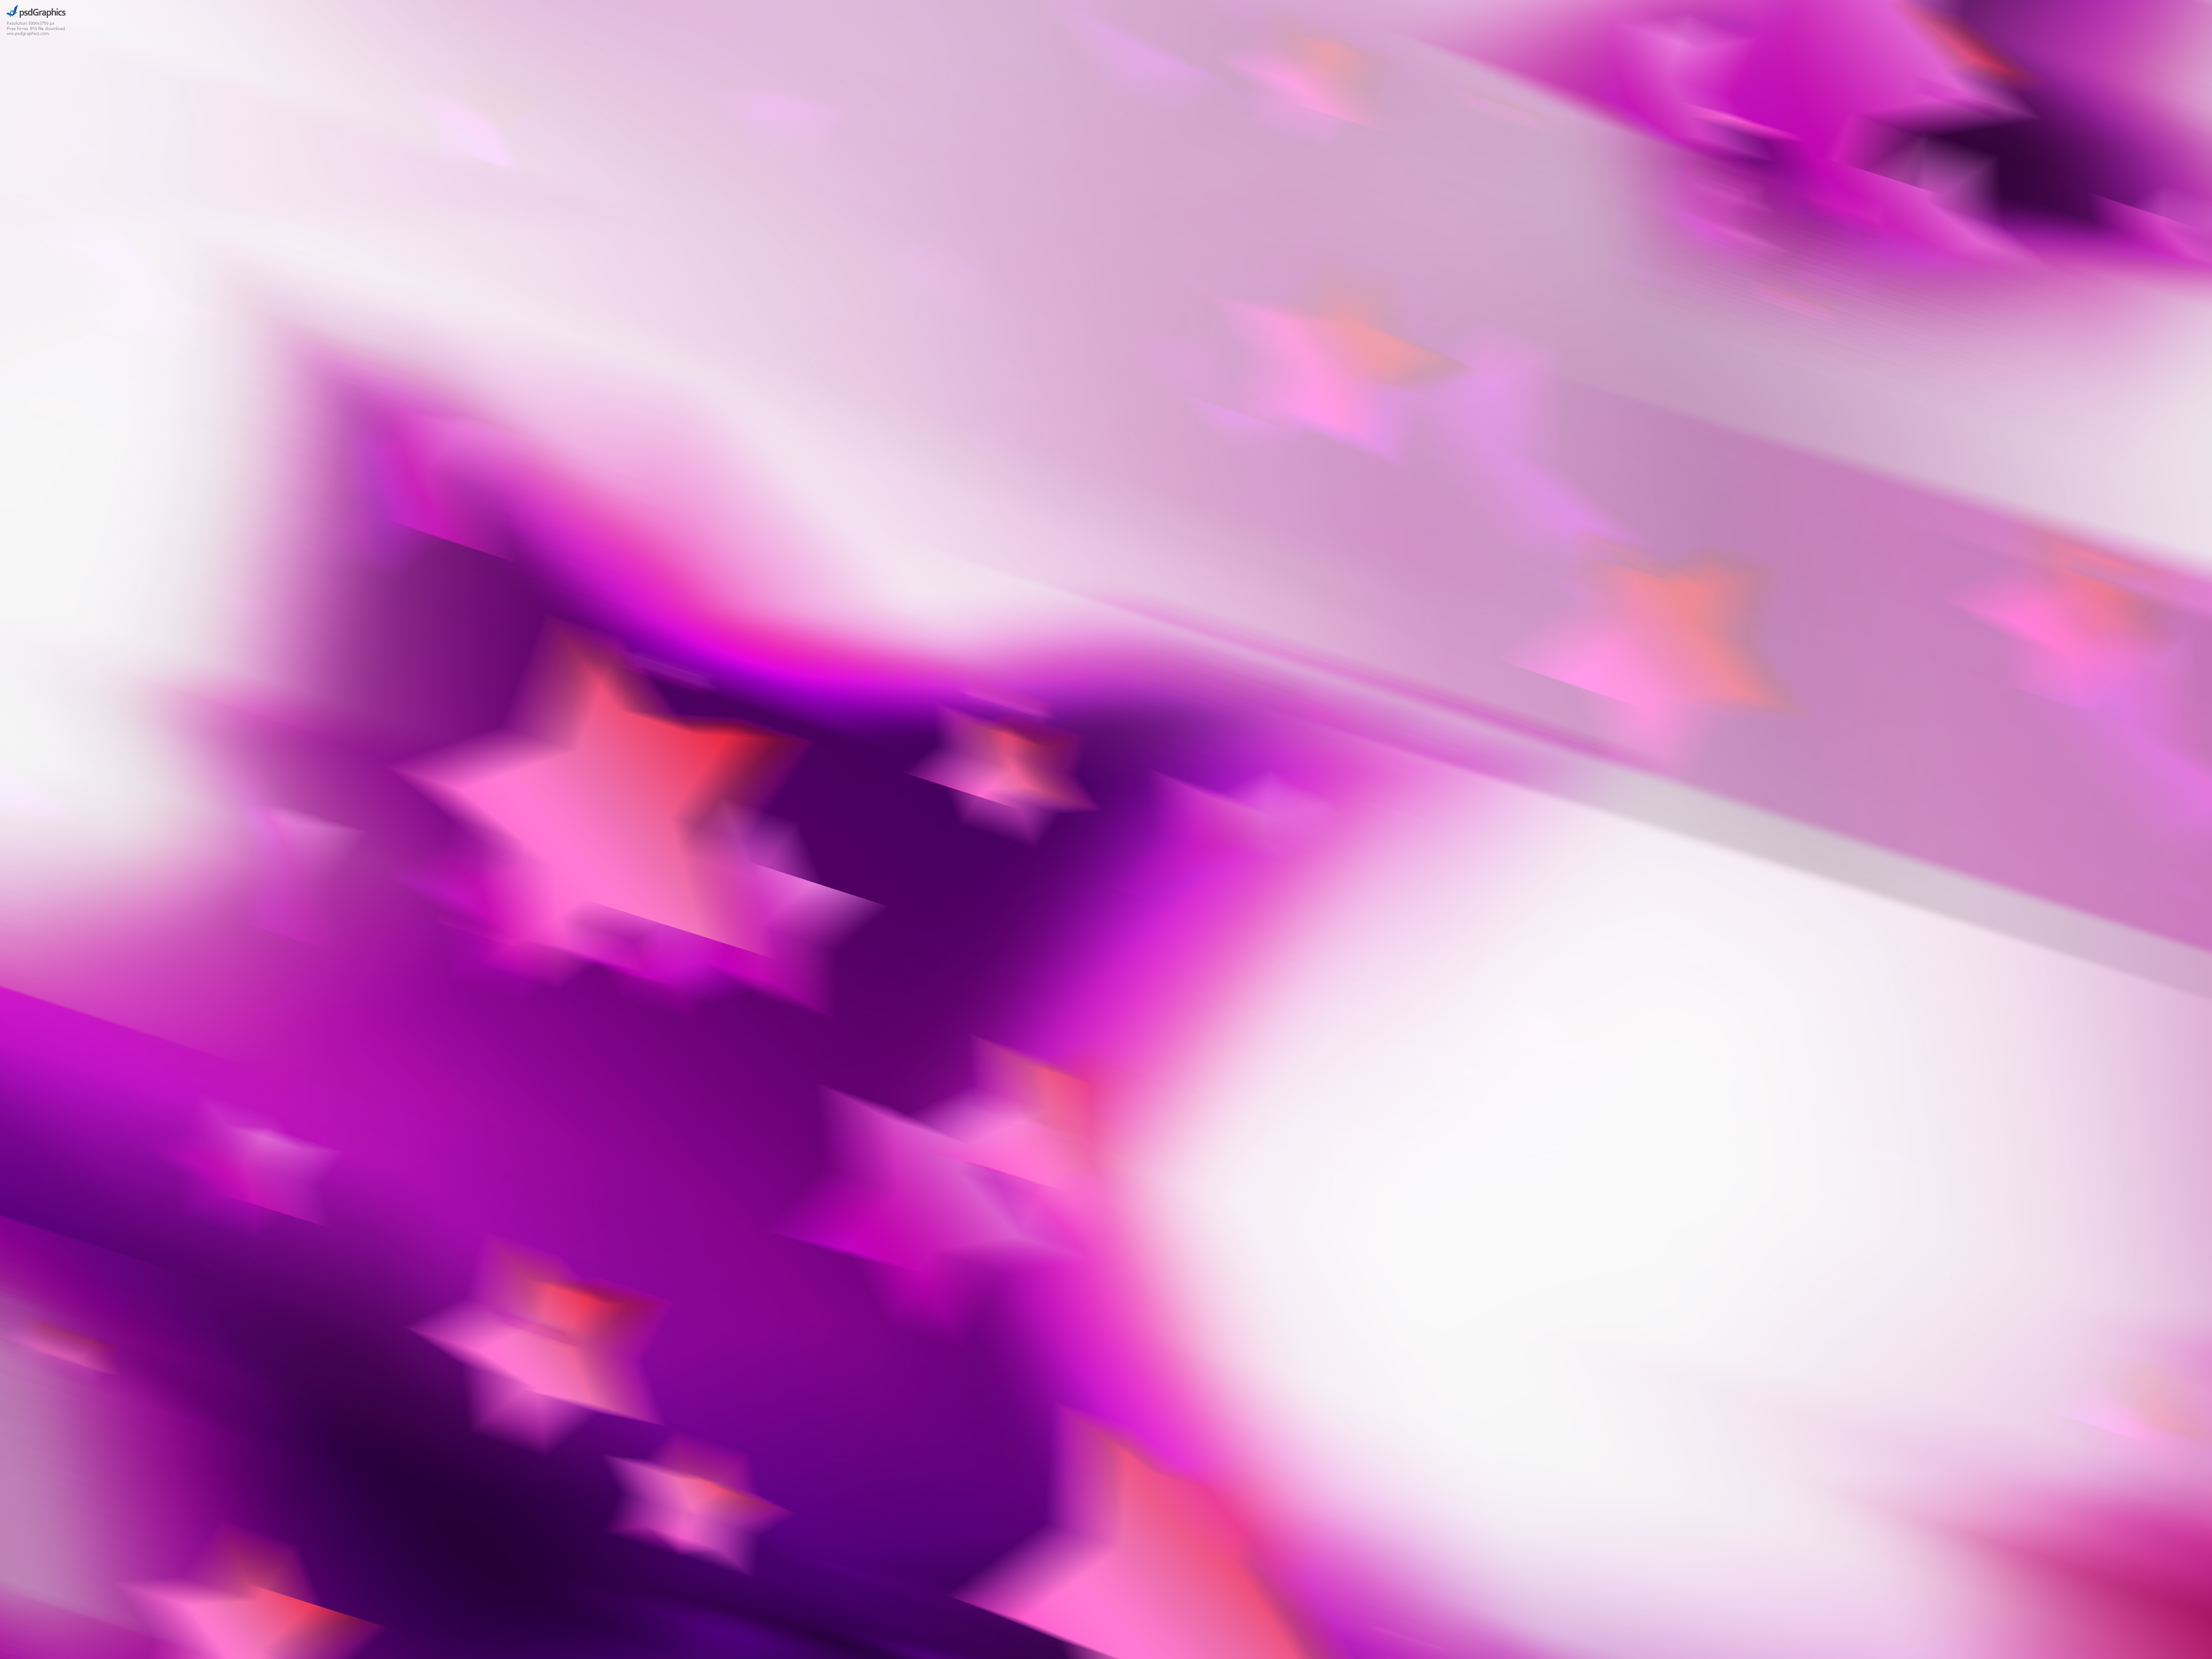 Abstract pink stars background psdgraphics pink stars background thecheapjerseys Choice Image